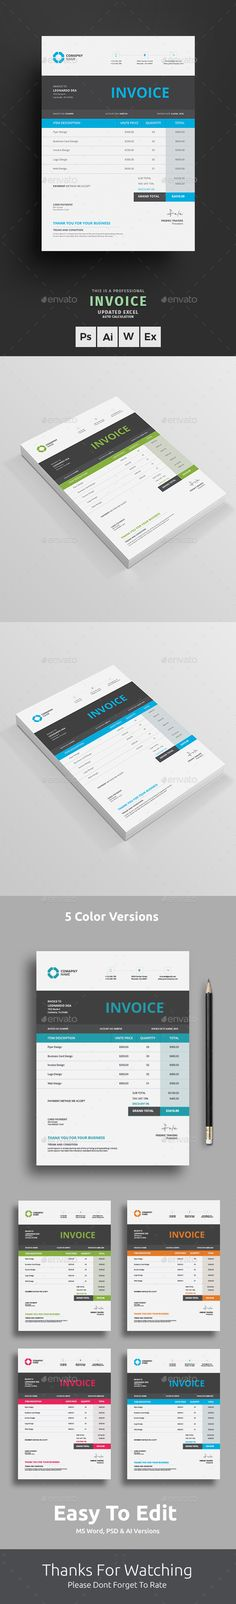 Invoice Estimation Brief - Proposals \ Invoices Stationery - invoice page